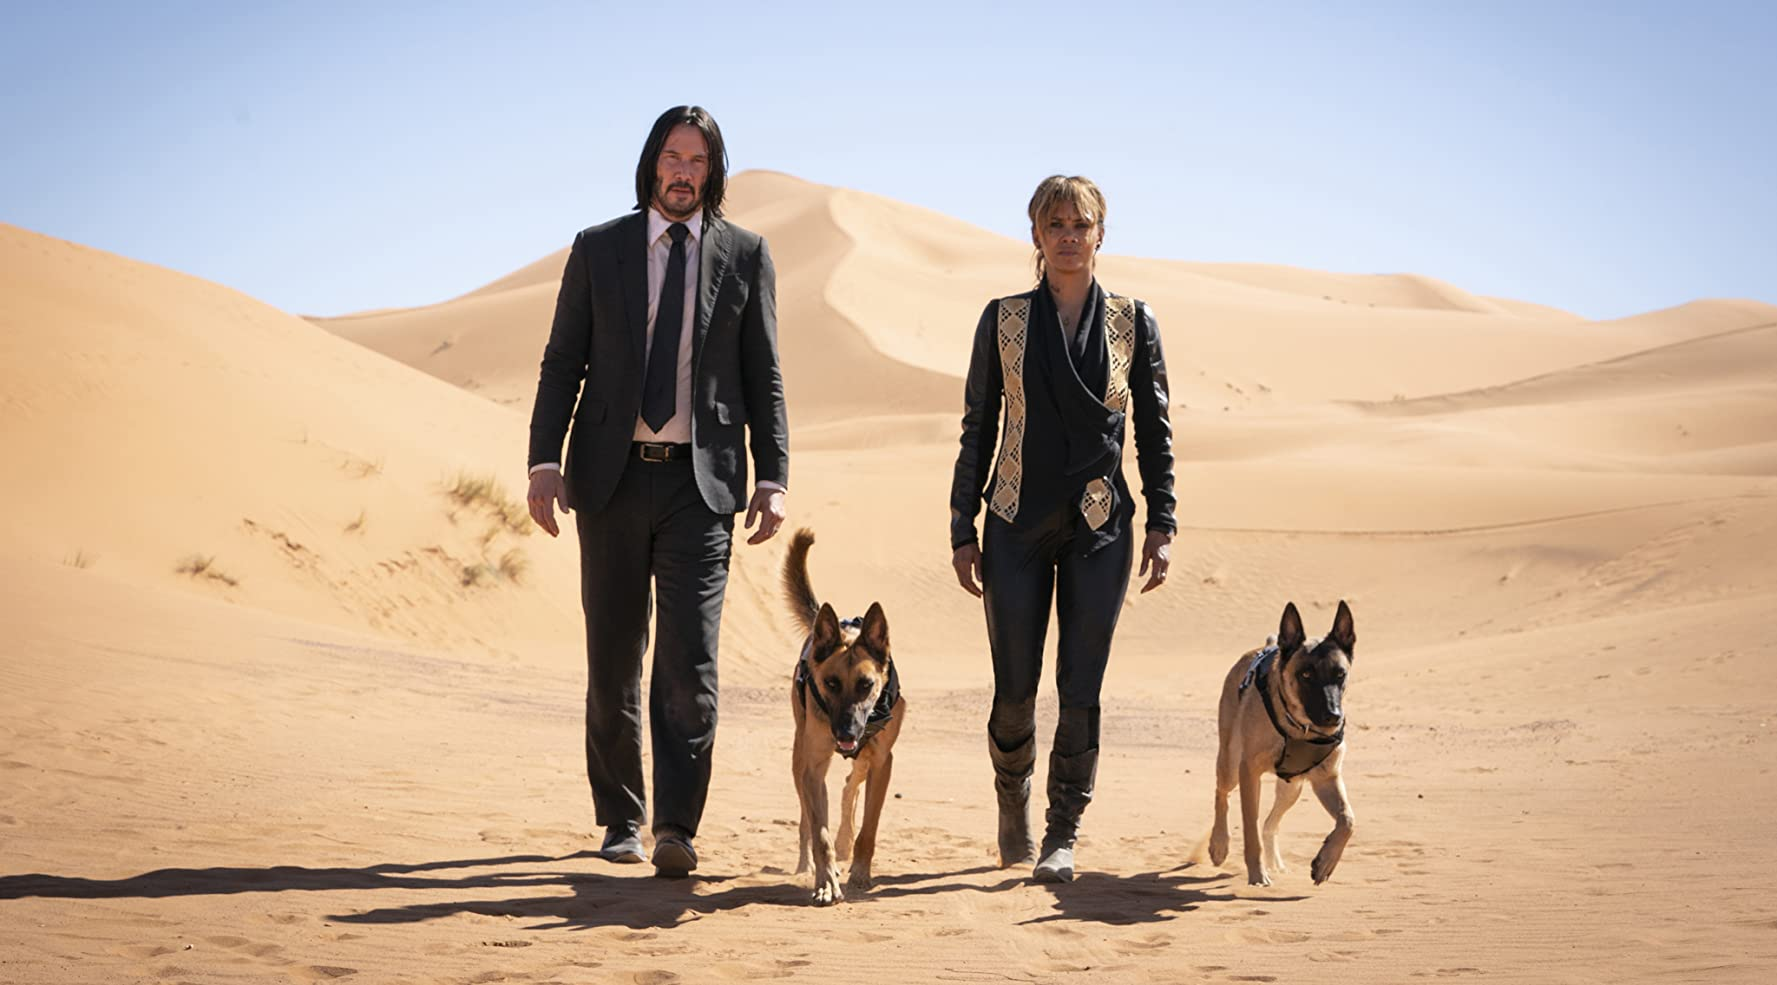 Keanu Reeves and Halle Berry in John Wick: Chapter 3 - Parabellum (2019)